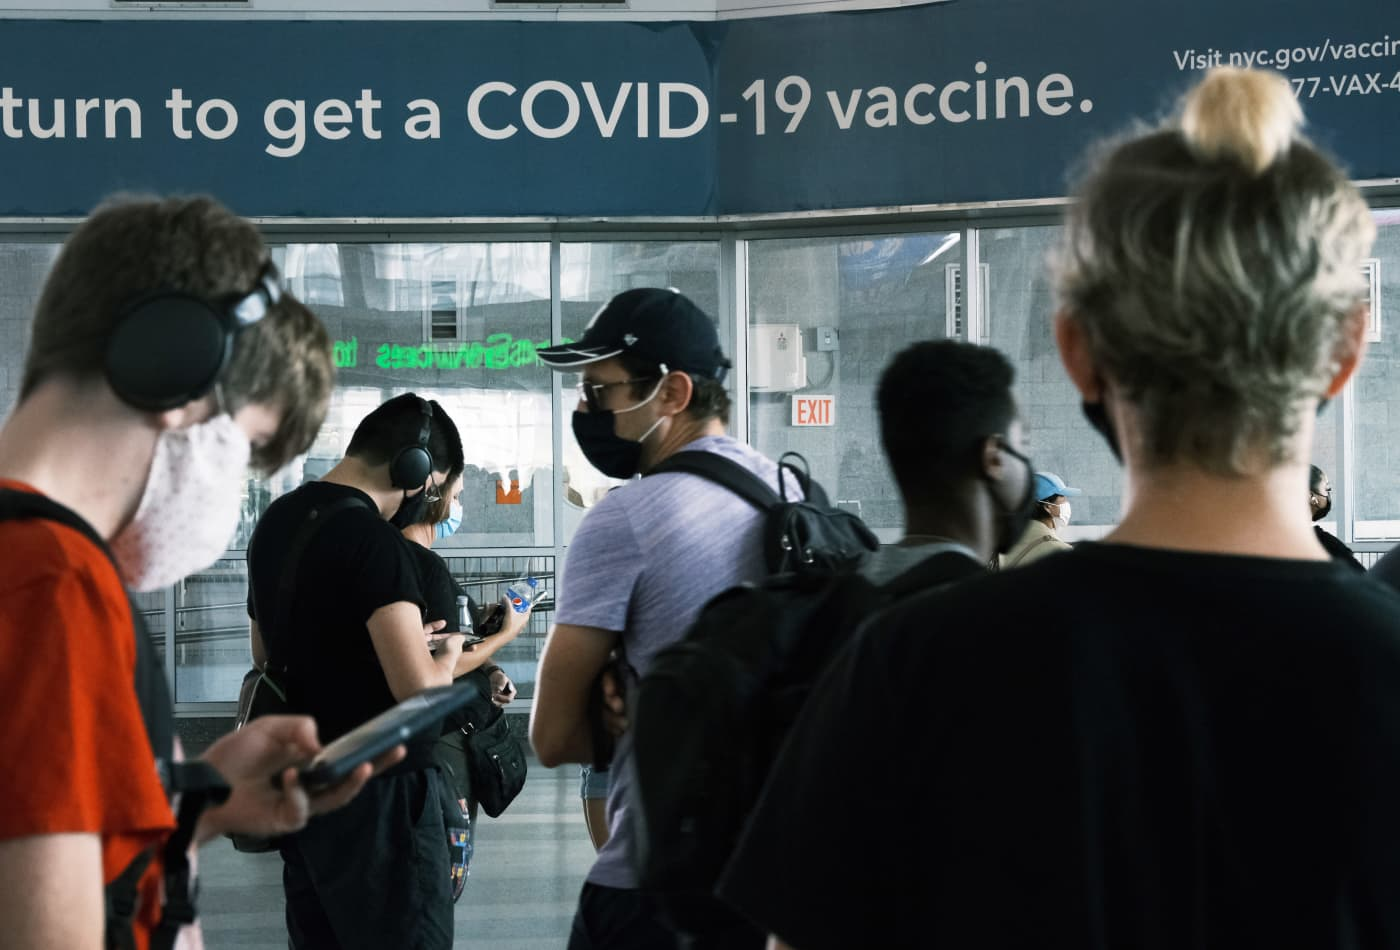 How to get New York's Excelsior Pass so you can show your proof of vaccination from your phone